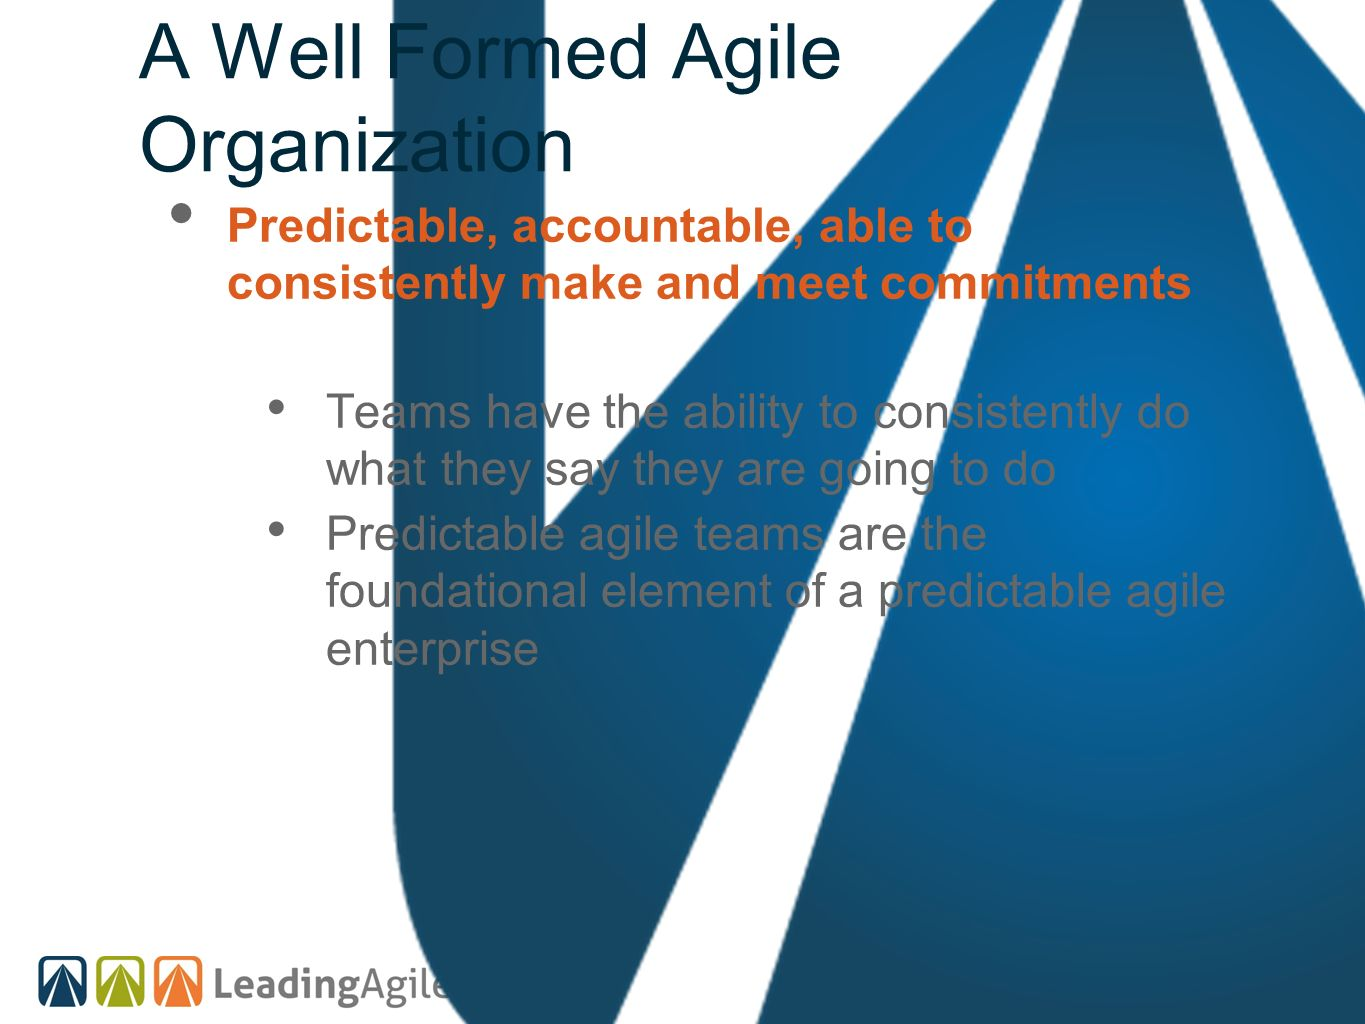 A Well Formed Agile Organization